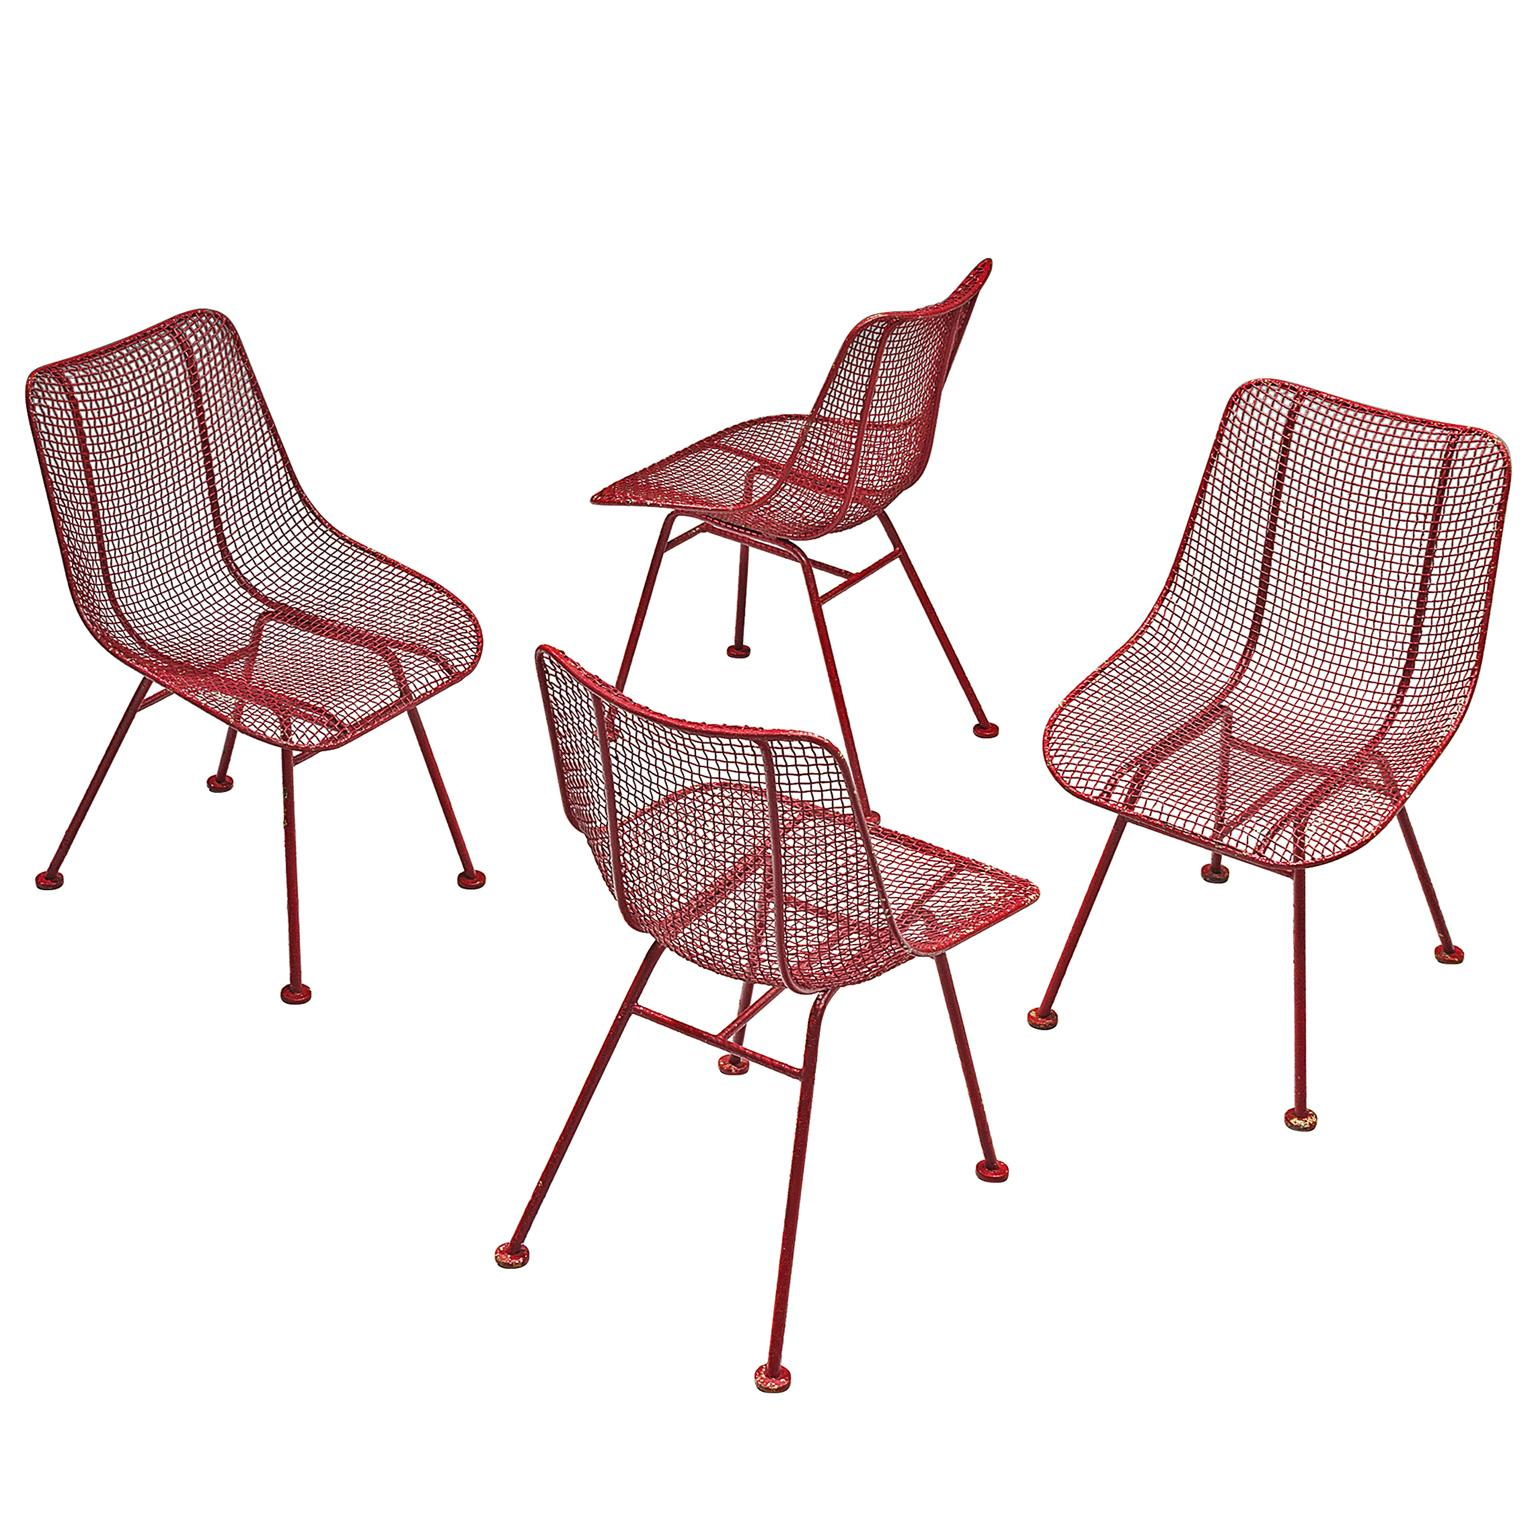 russall woodard sculptura set of four red patio chairs for sale at rh 1stdibs com red patio chair seat cushions red patio chairs target